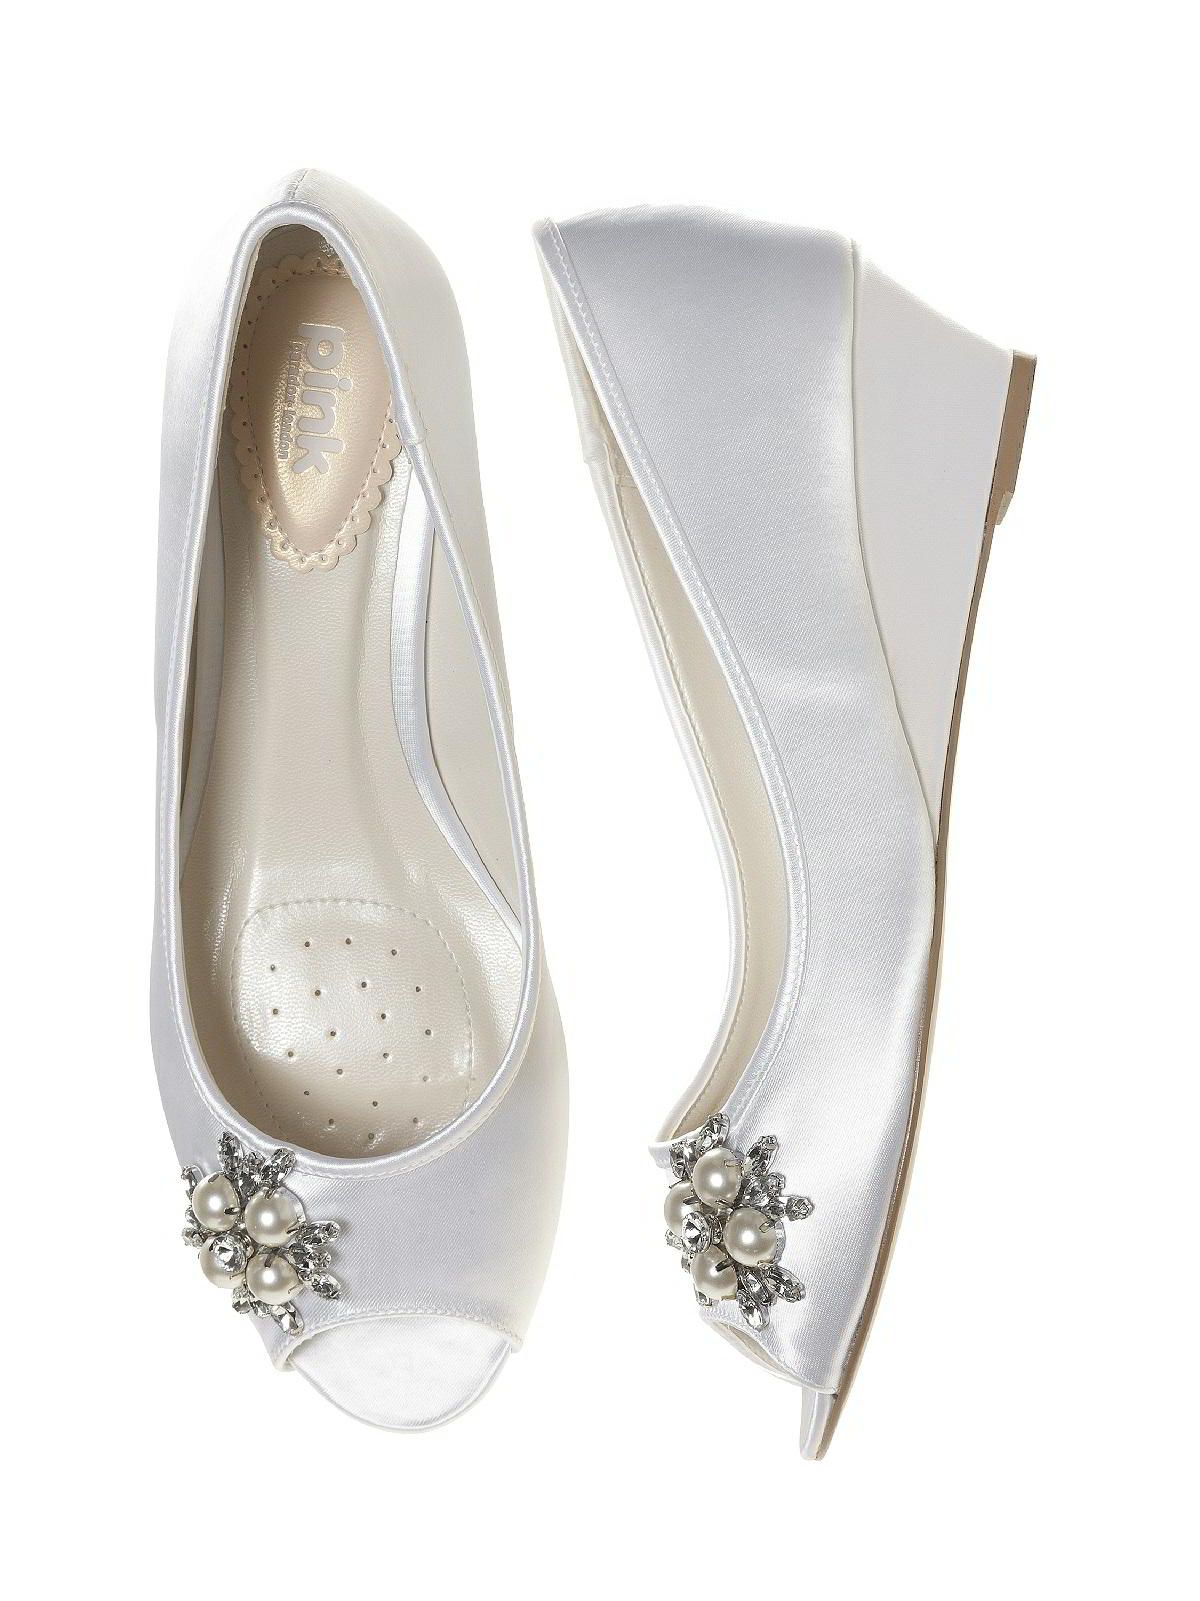 Wedge Heel Bridal Shoes Frosting Dyeable Satin In White